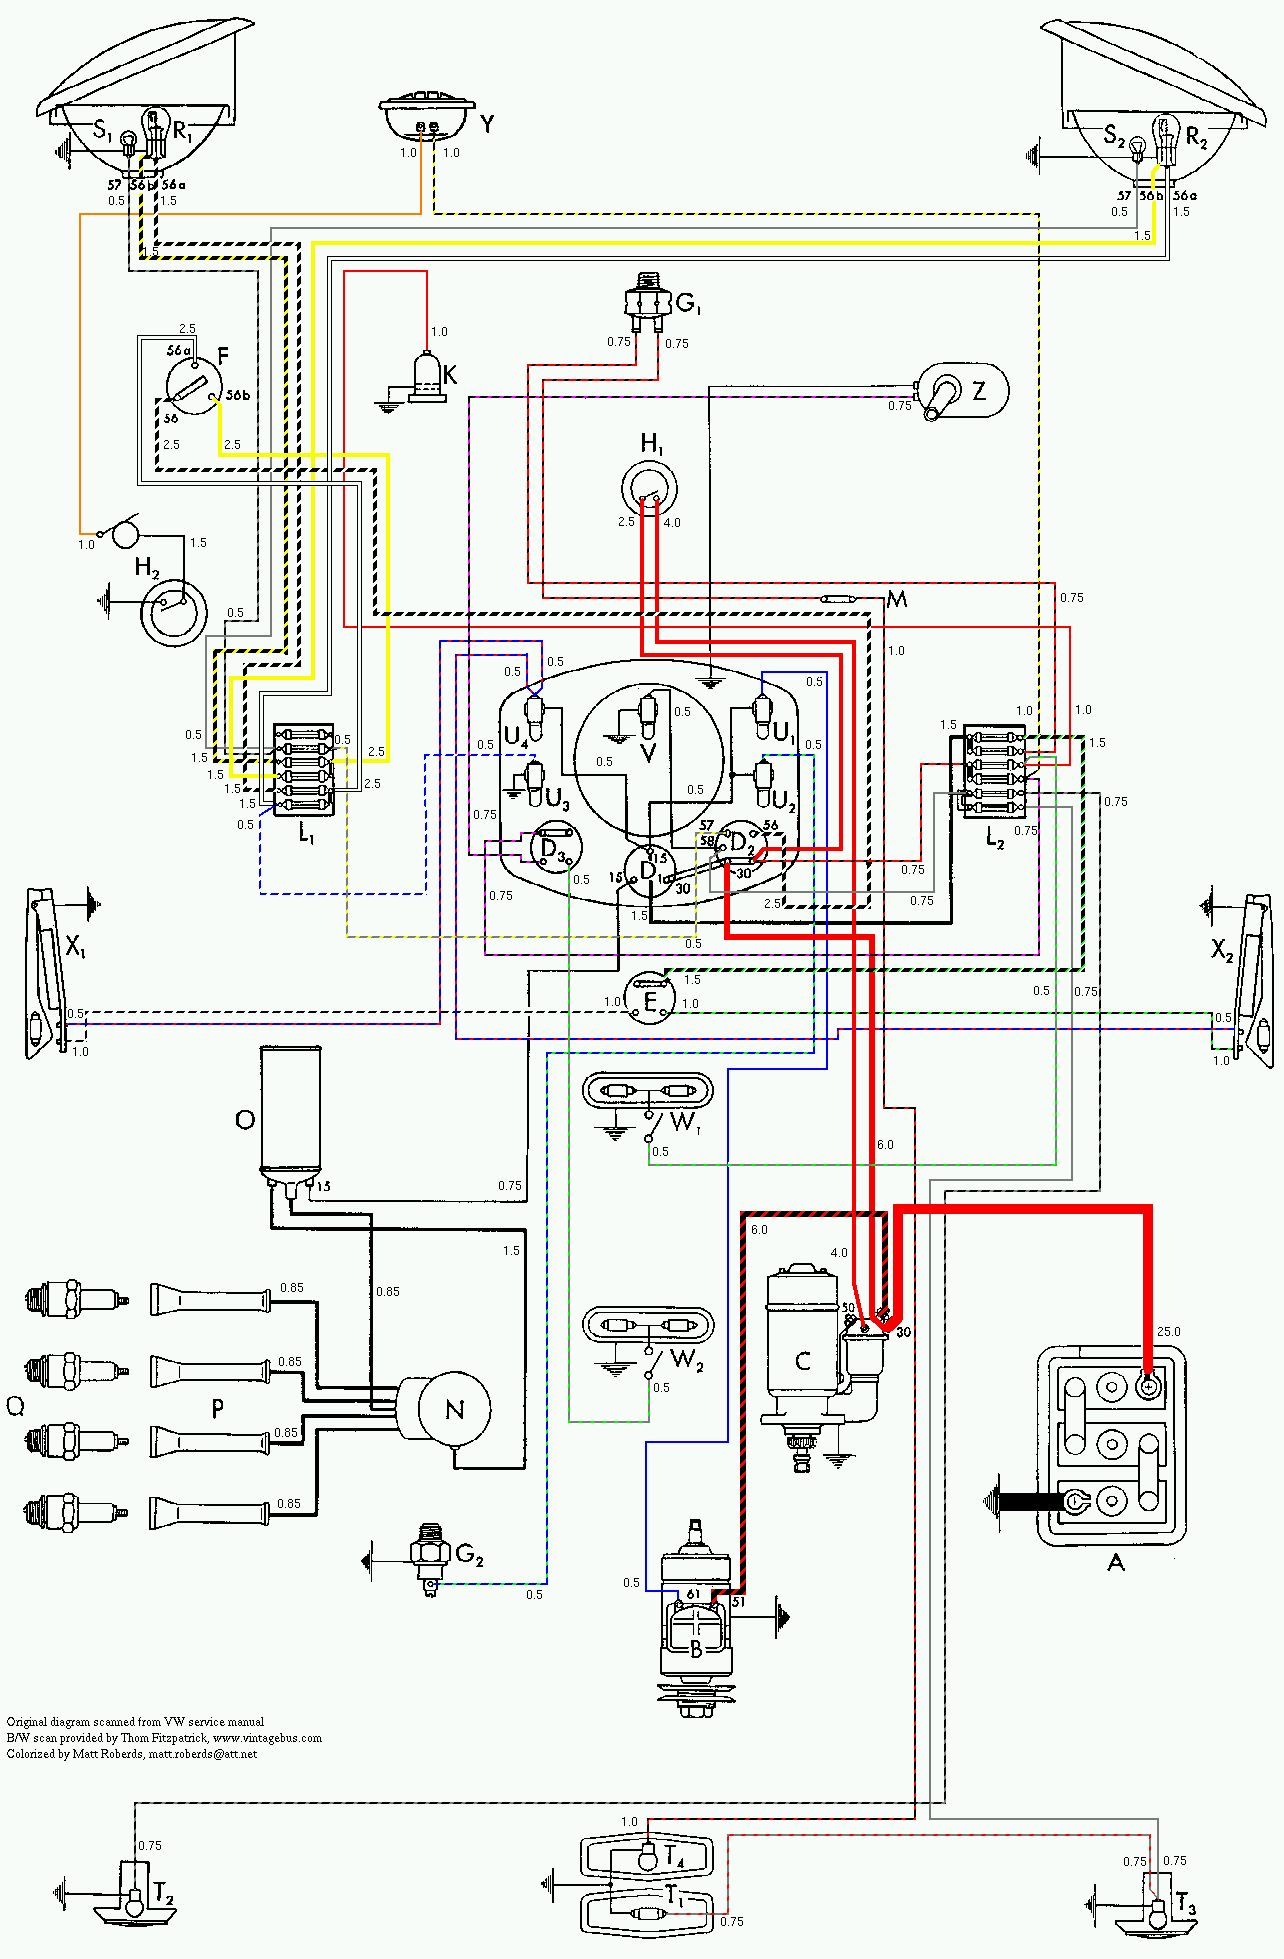 Fuse Box Wall Auto Electrical Wiring Diagram 350 Chevy Alternator As Well 1994 Thomas Bus Diagrams